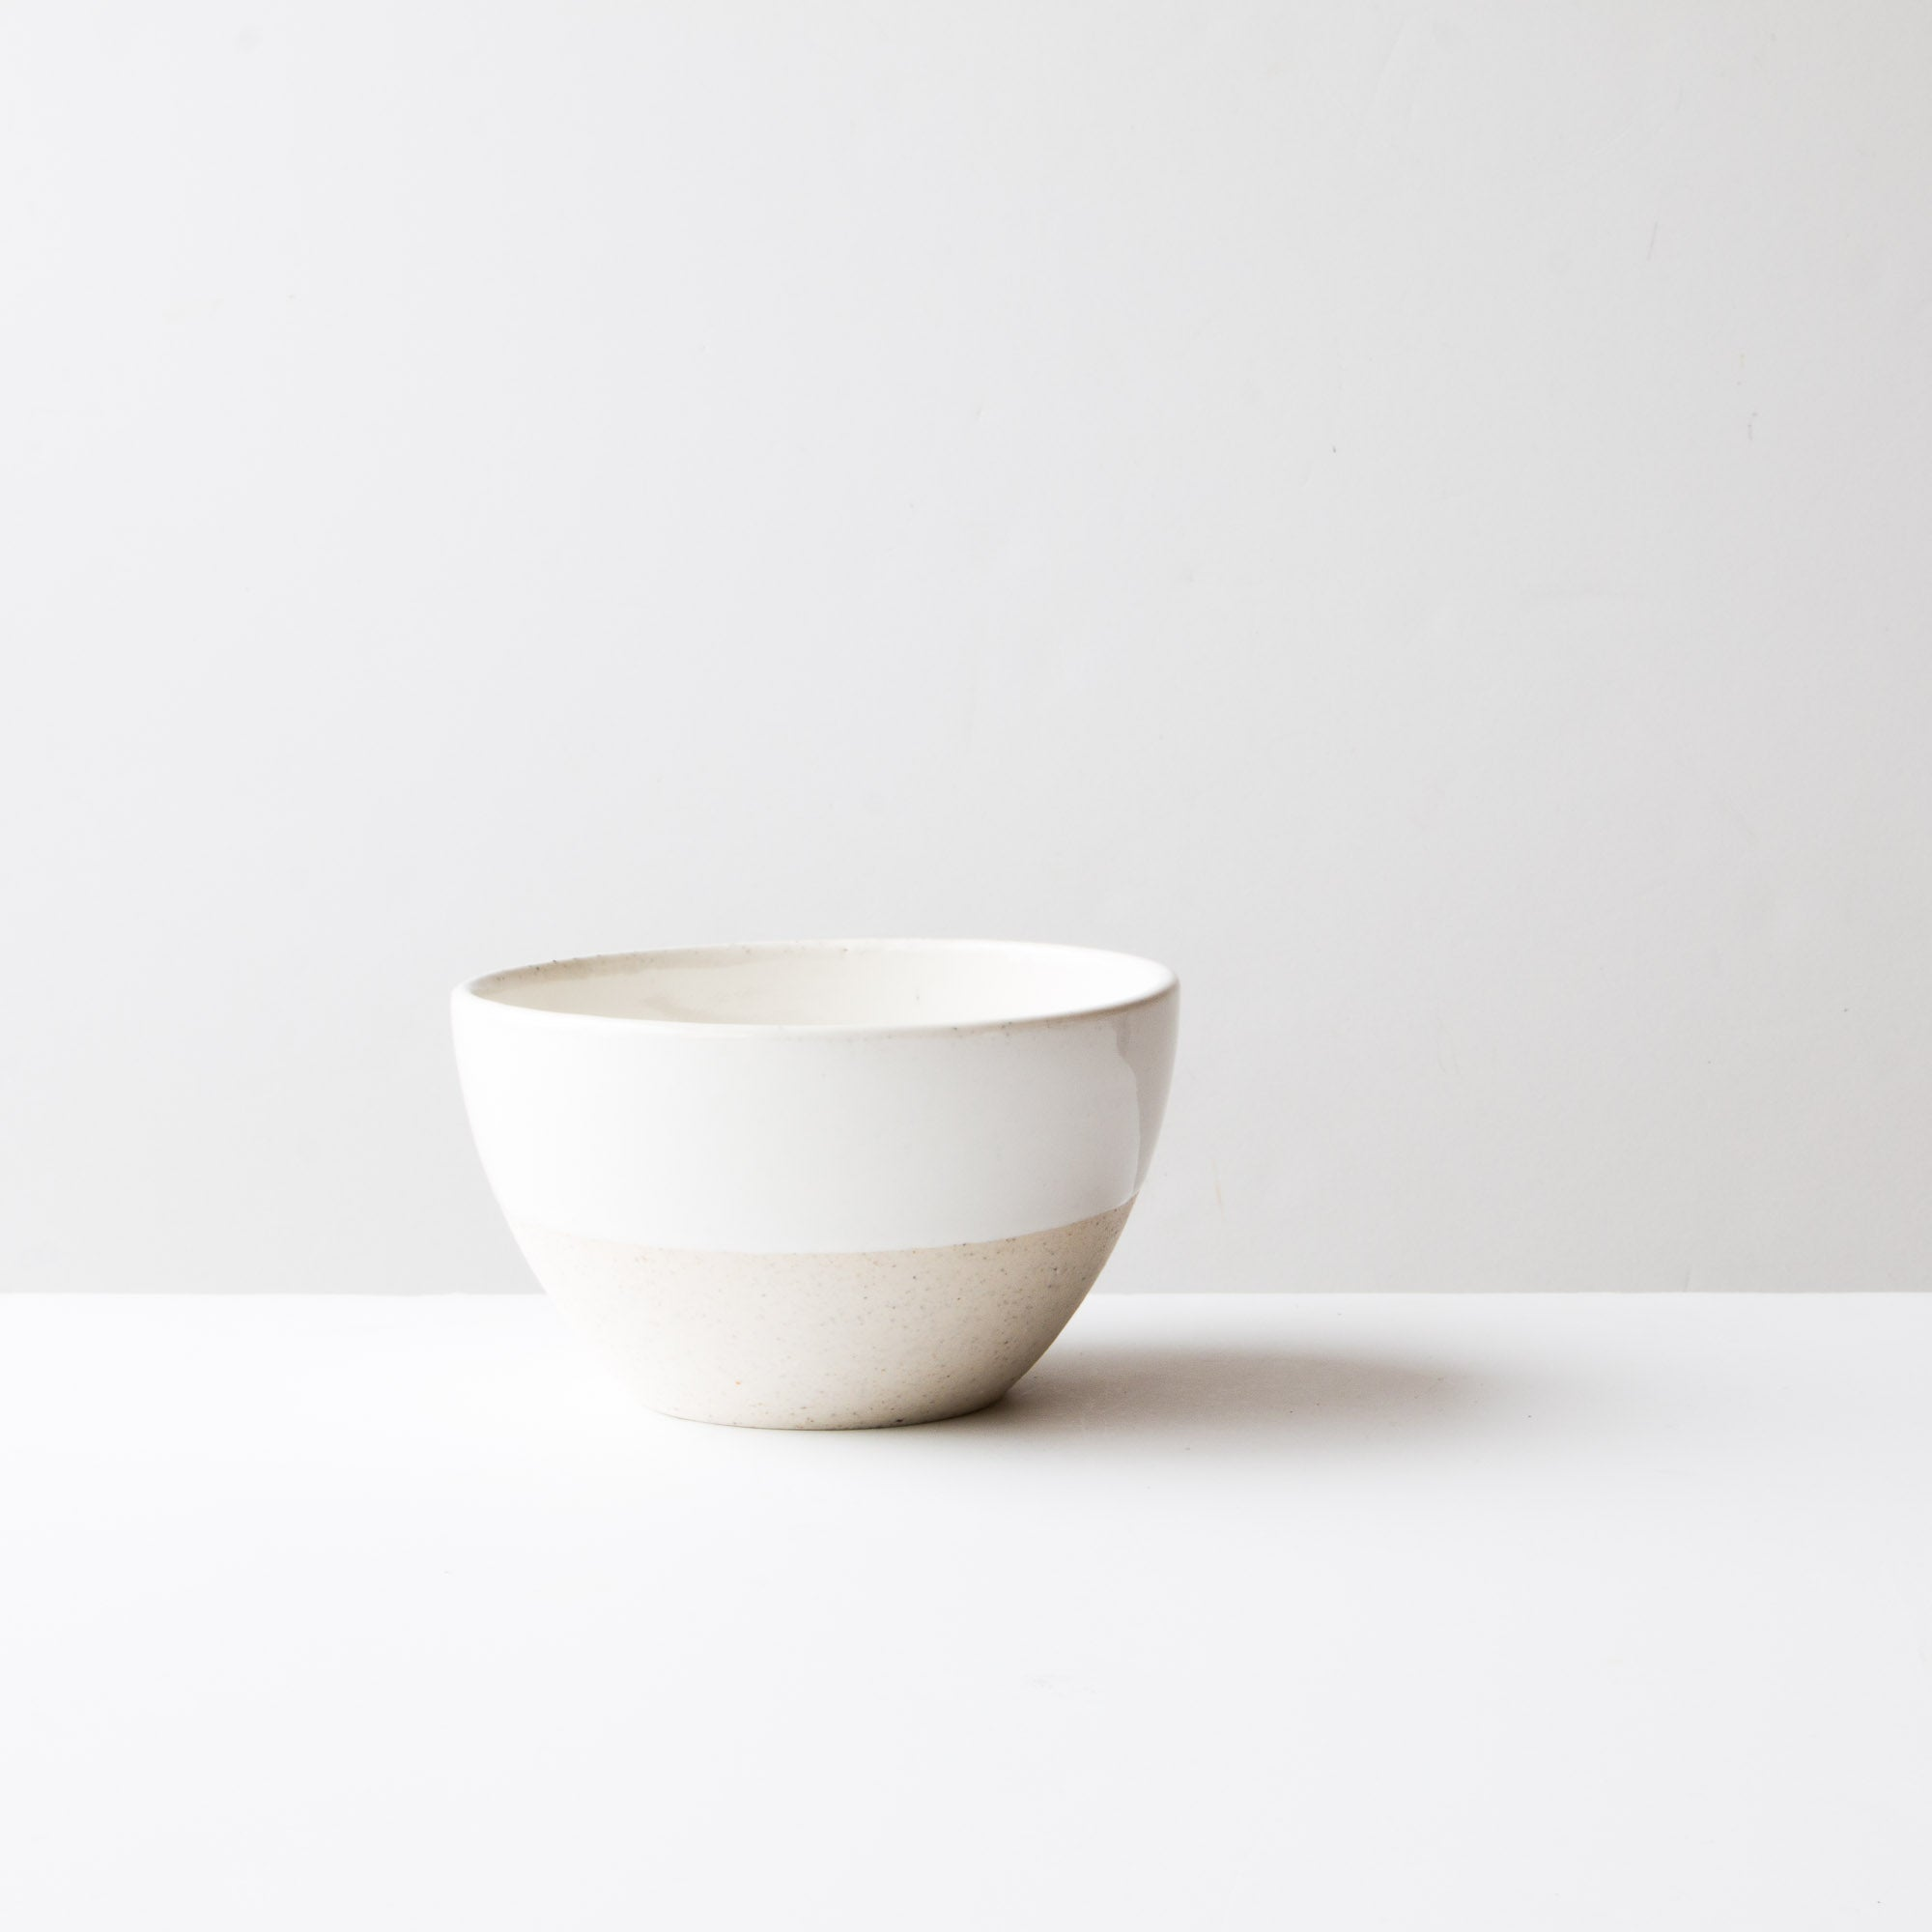 Large Ceramic Soup Bowls - Handmade in Québec - Sold by Chic & Basta